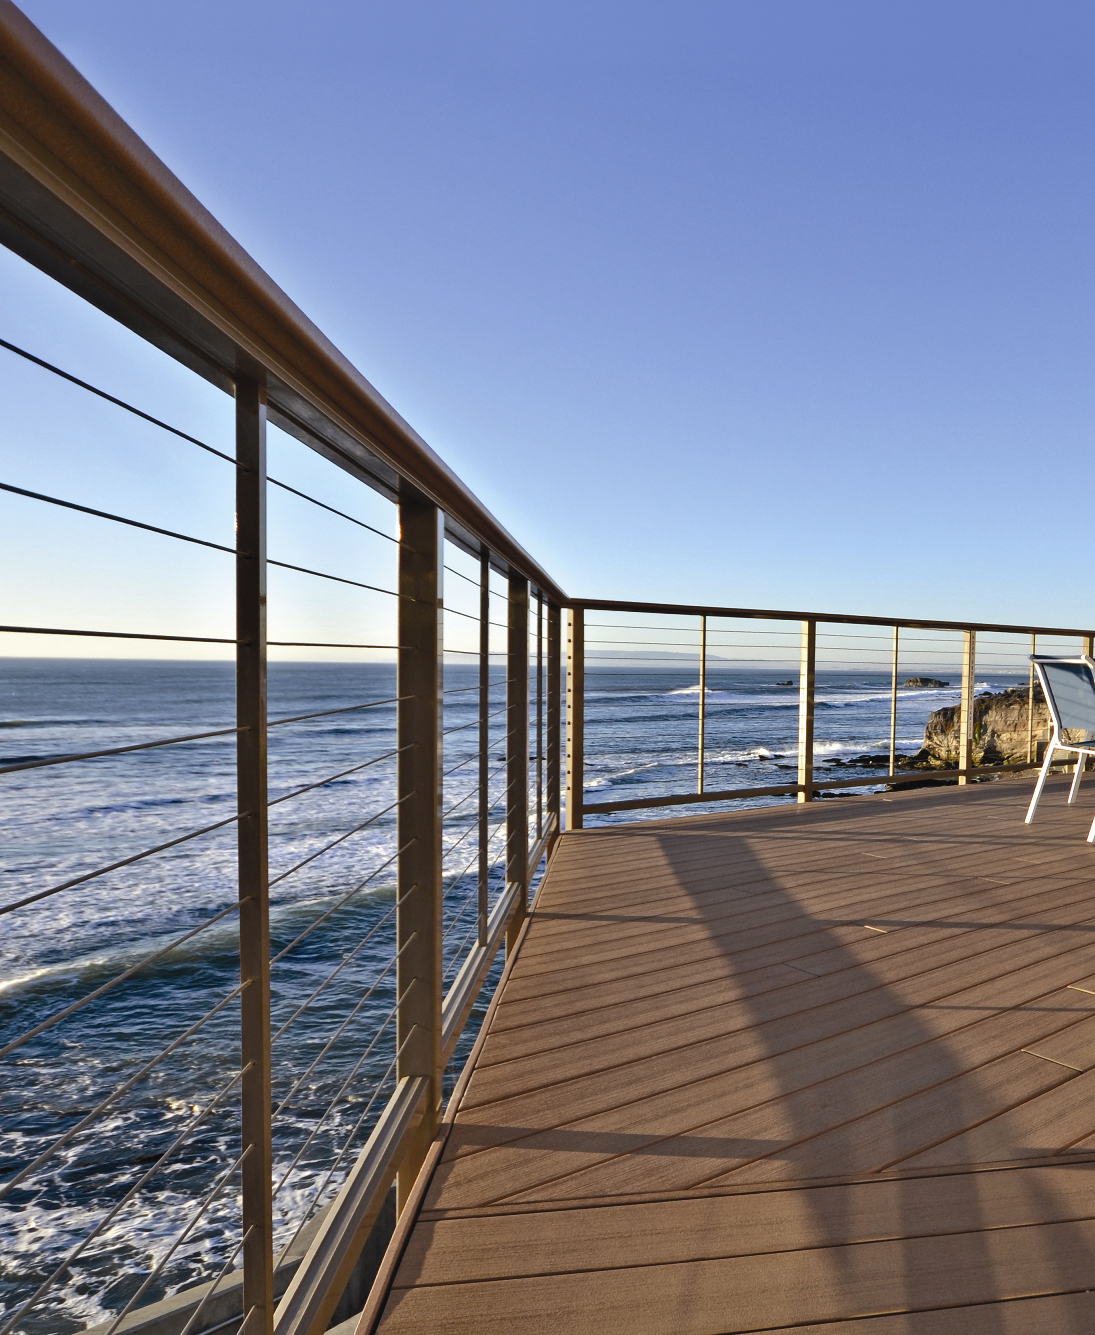 Dream Homes with Feeney Deck Railing installed